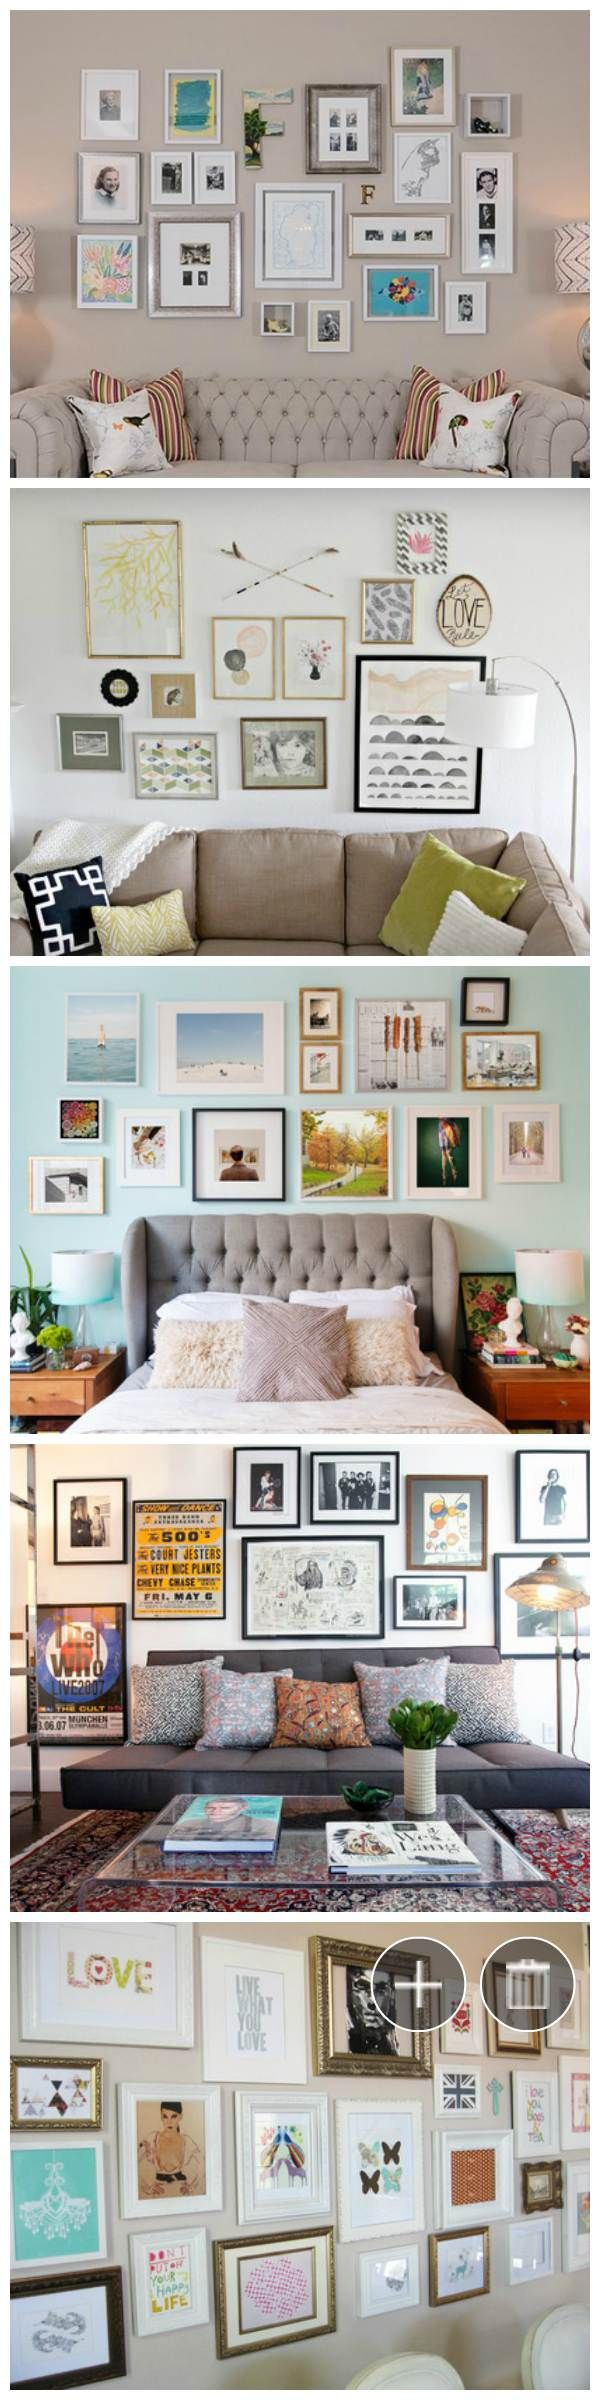 Making an art gallery-style wall in your home is one of the hardest things of all -- we know, we tried and didn't do well until we got some tips from designers! Here are seven very specific ideas that you can use when planning yours so it comes out looking great.